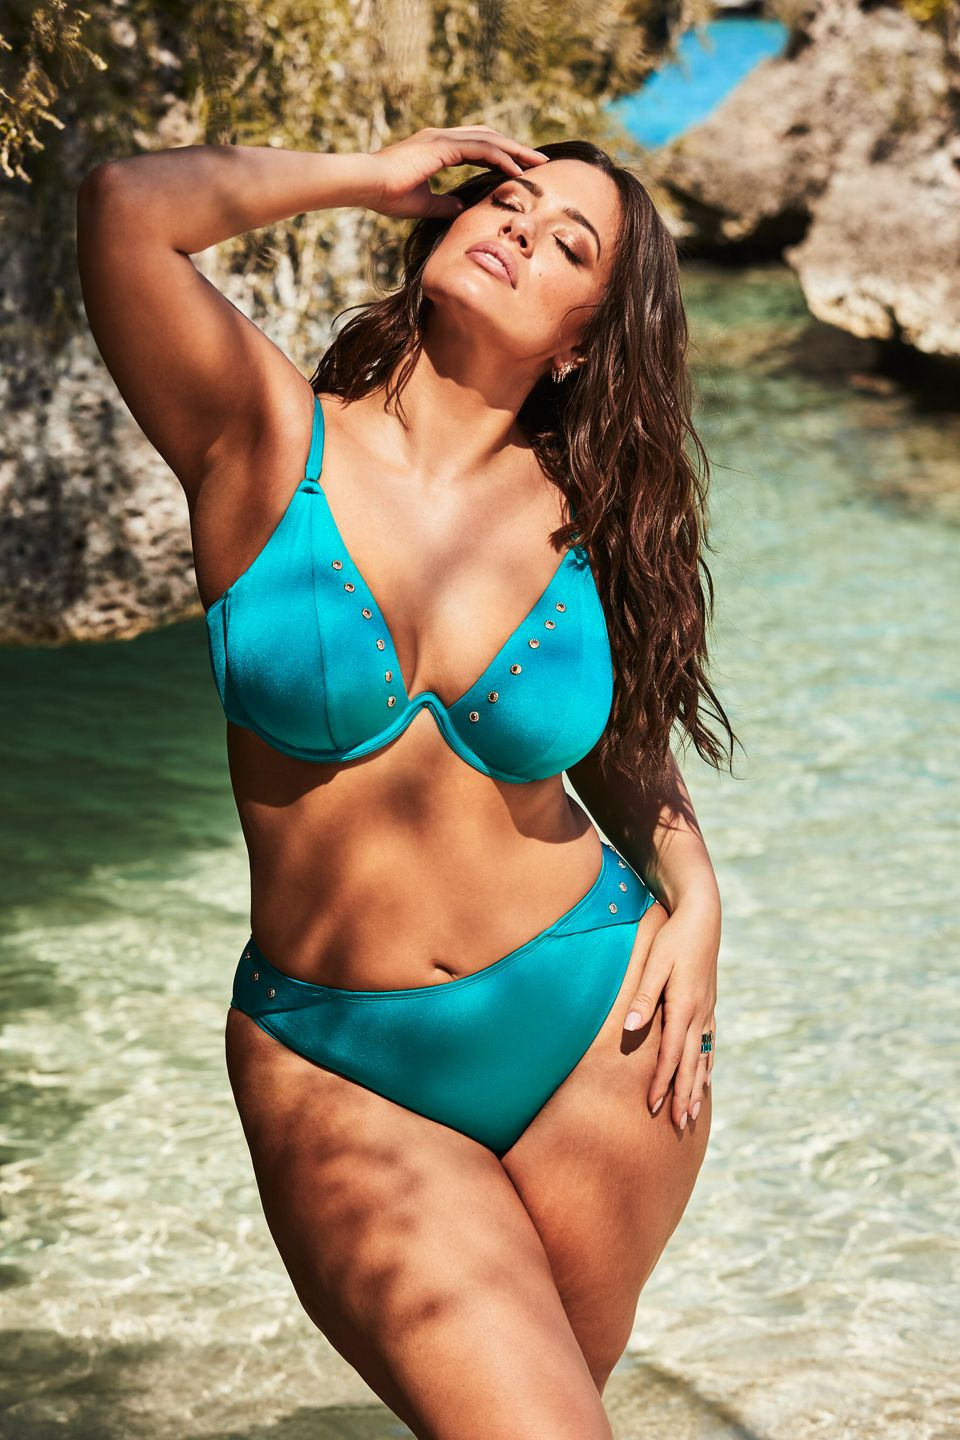 44802365a8 Ashley Graham's New Swimwear Line Features Her Sister In Sibling ...